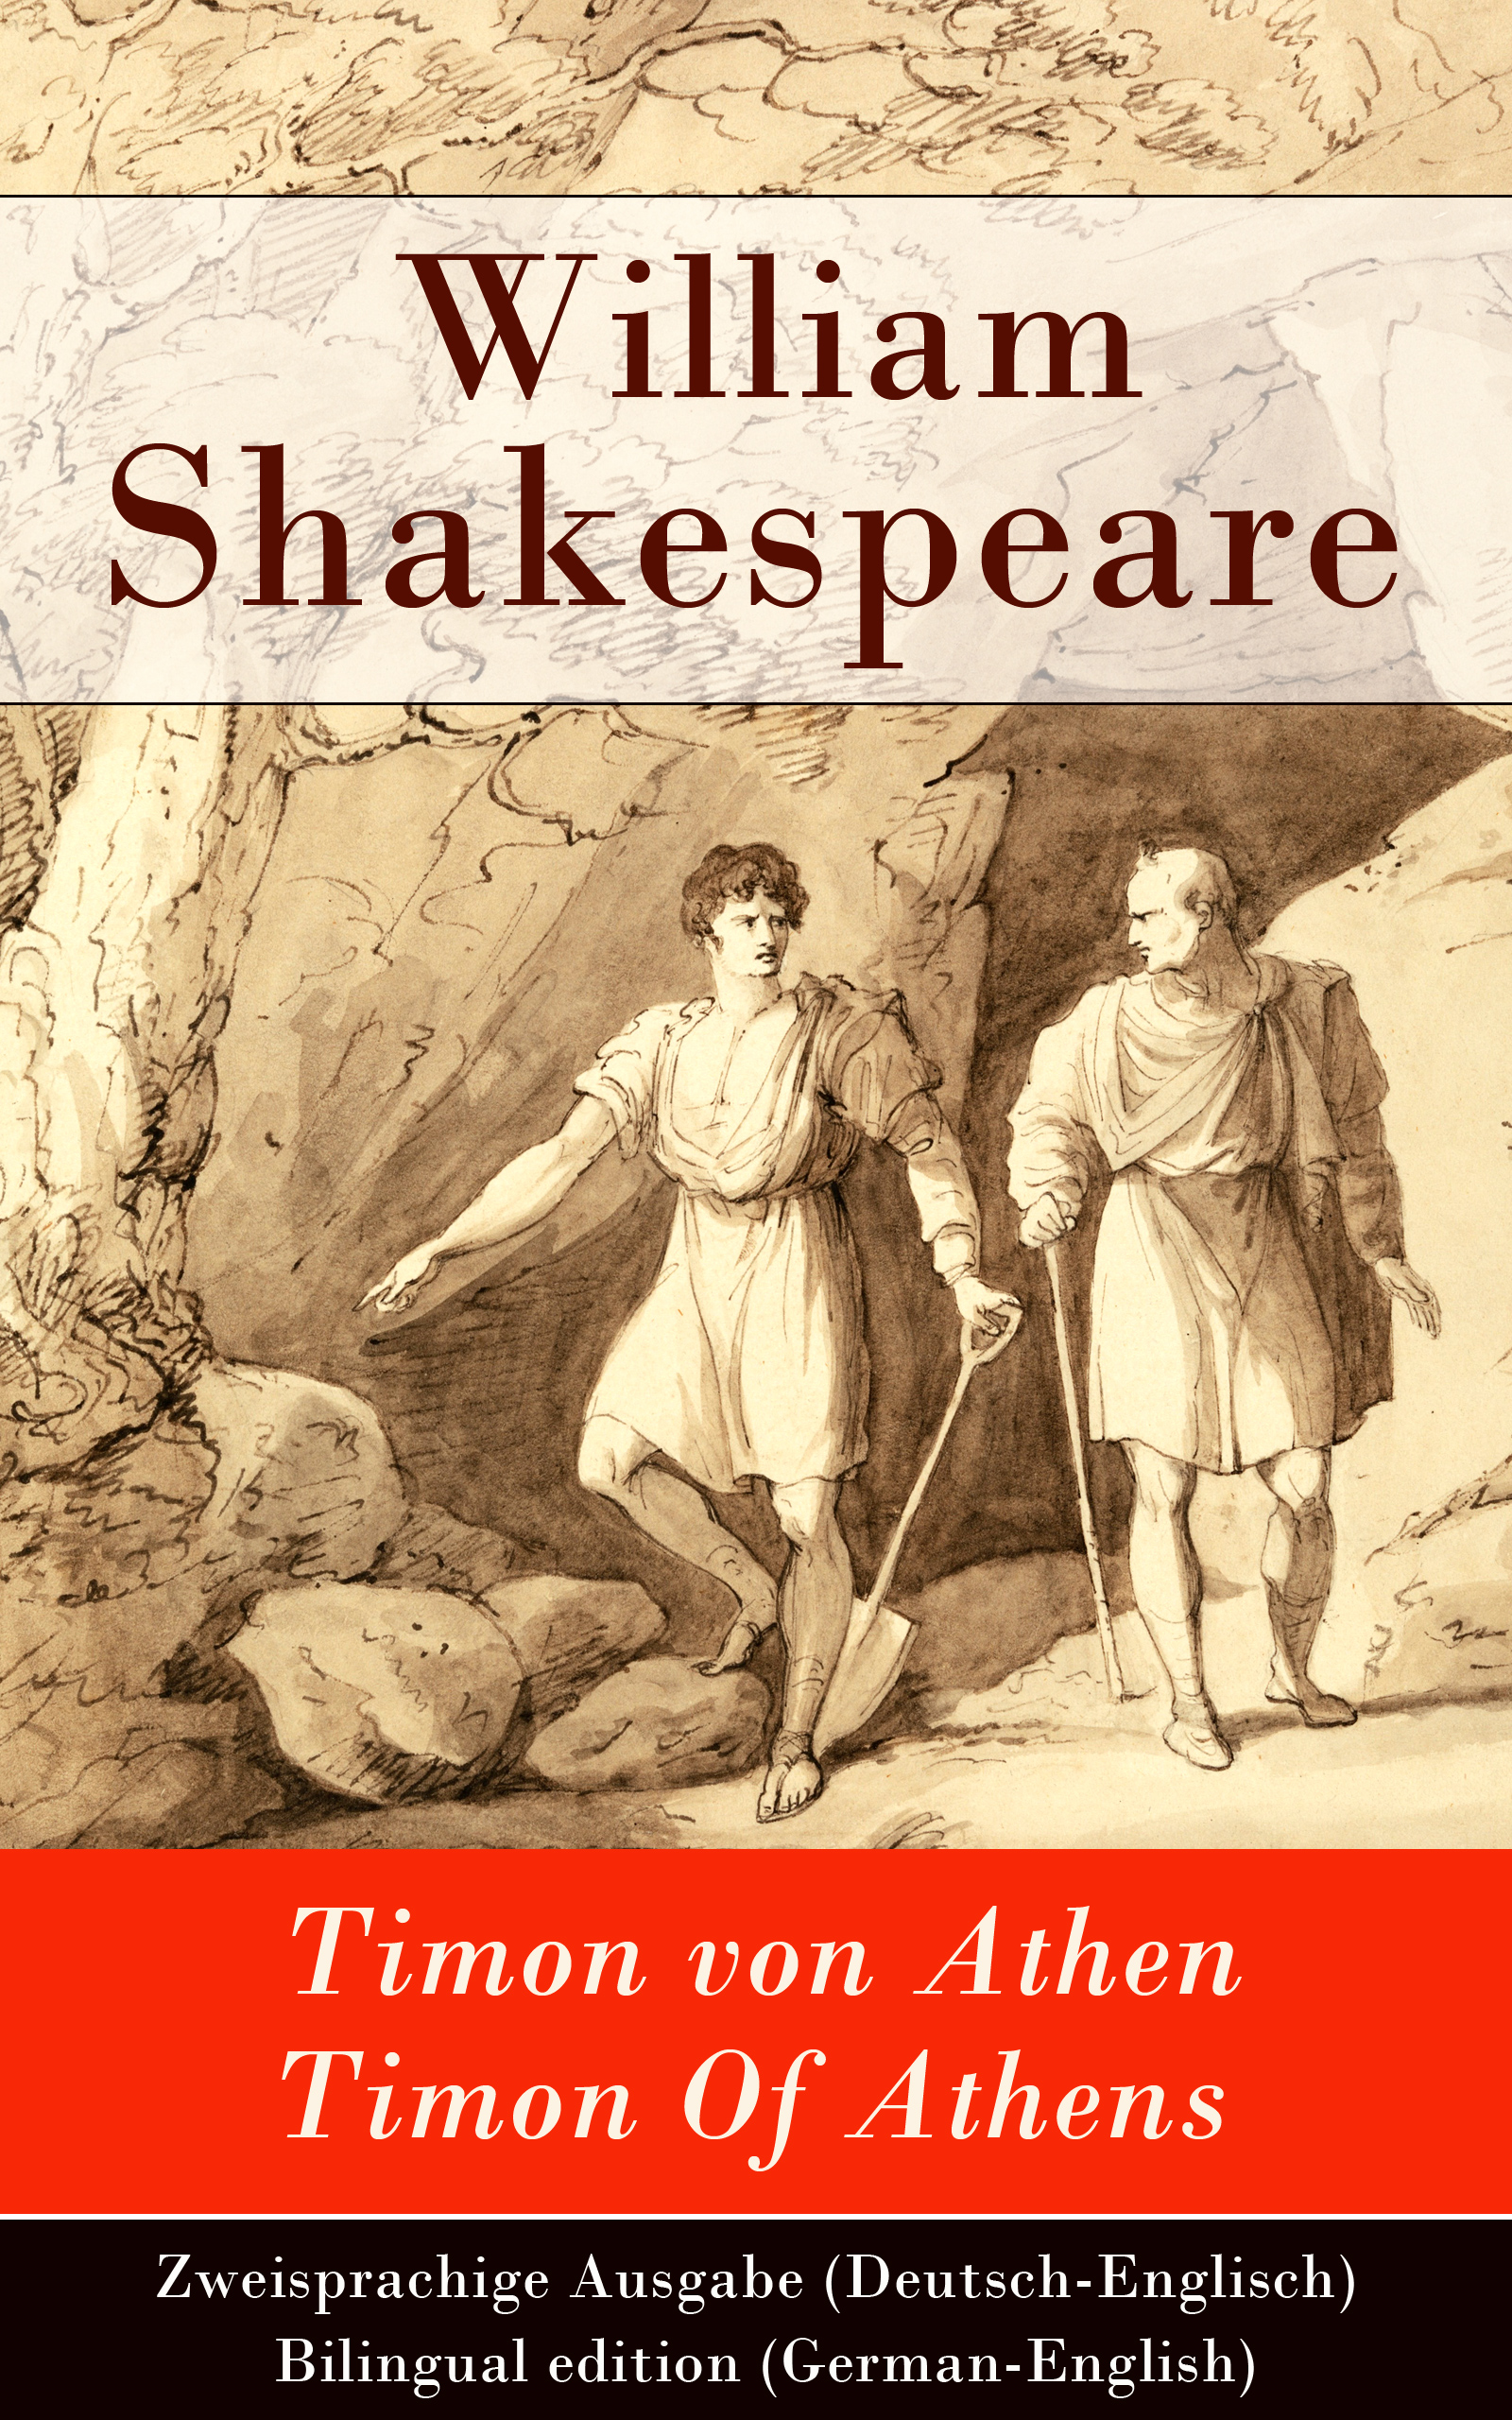 timon von athen timon of athens zweisprachige ausgabe deutsch englisch bilingual edition german english